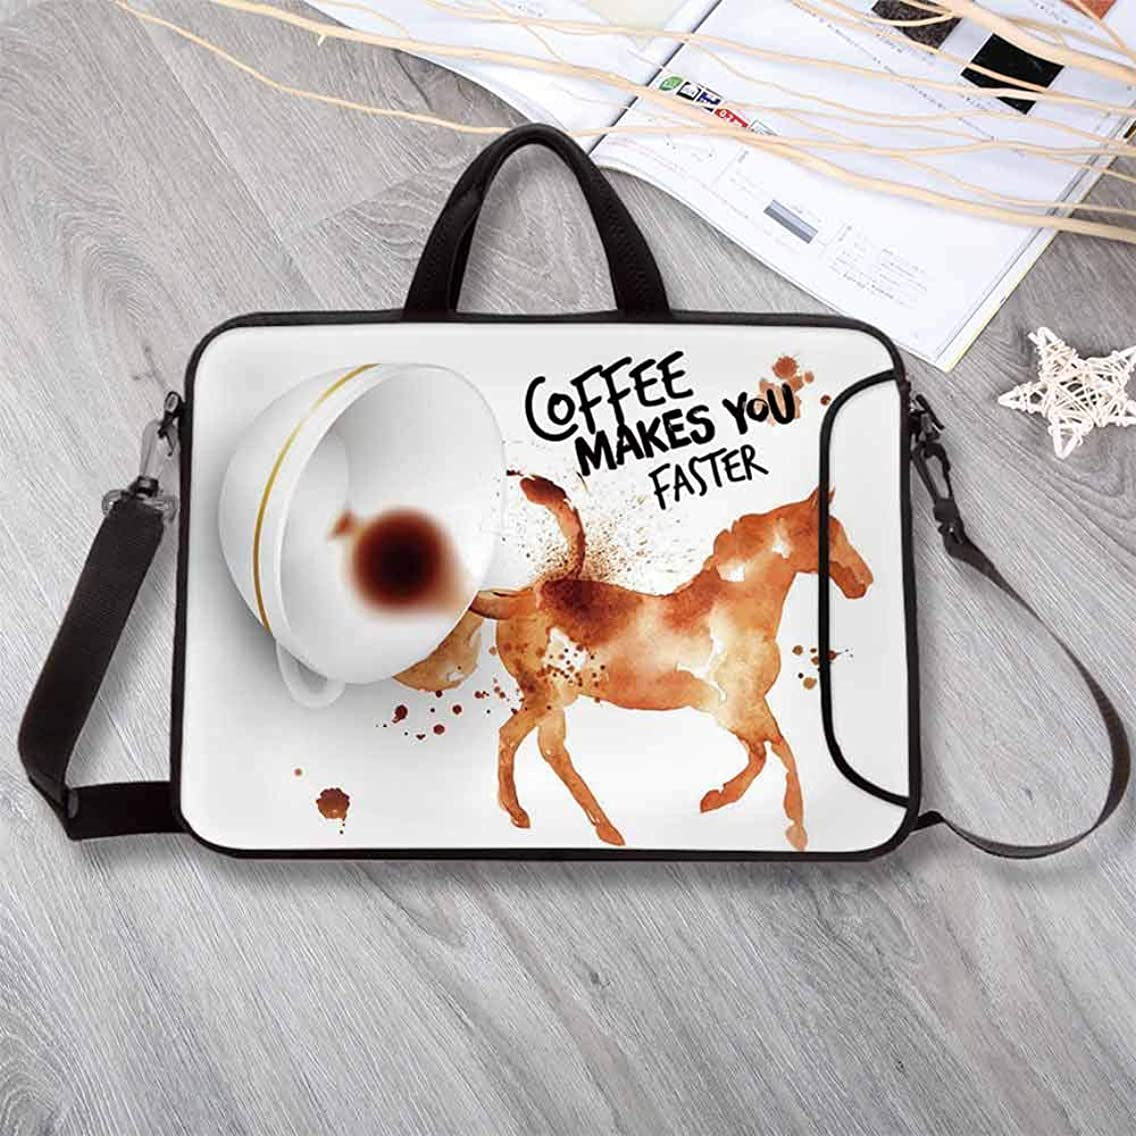 "Coffee Art Large Capacity Neoprene Laptop Bag,Hand Drawn Style Horse Silhouette with Positive Life Message Messy Look Decorative Laptop Bag for 10 Inch to 17 Inch Laptop,17.3""L x 13""W x 0.8""H"